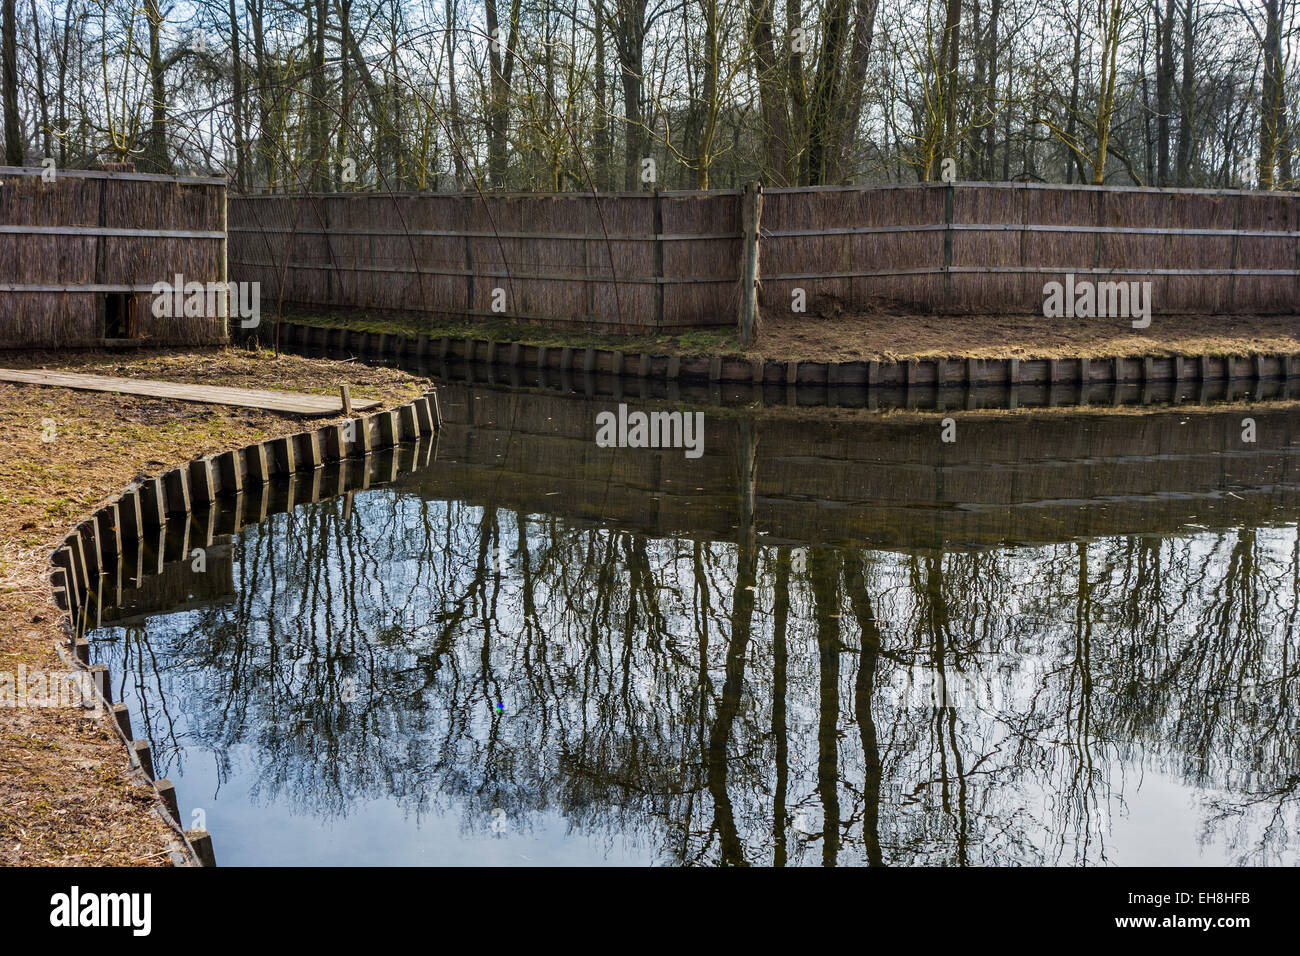 Duck decoy structure used for catching wild ducks showing pond and beginning of pipe formed by hoops with netting - Stock Image